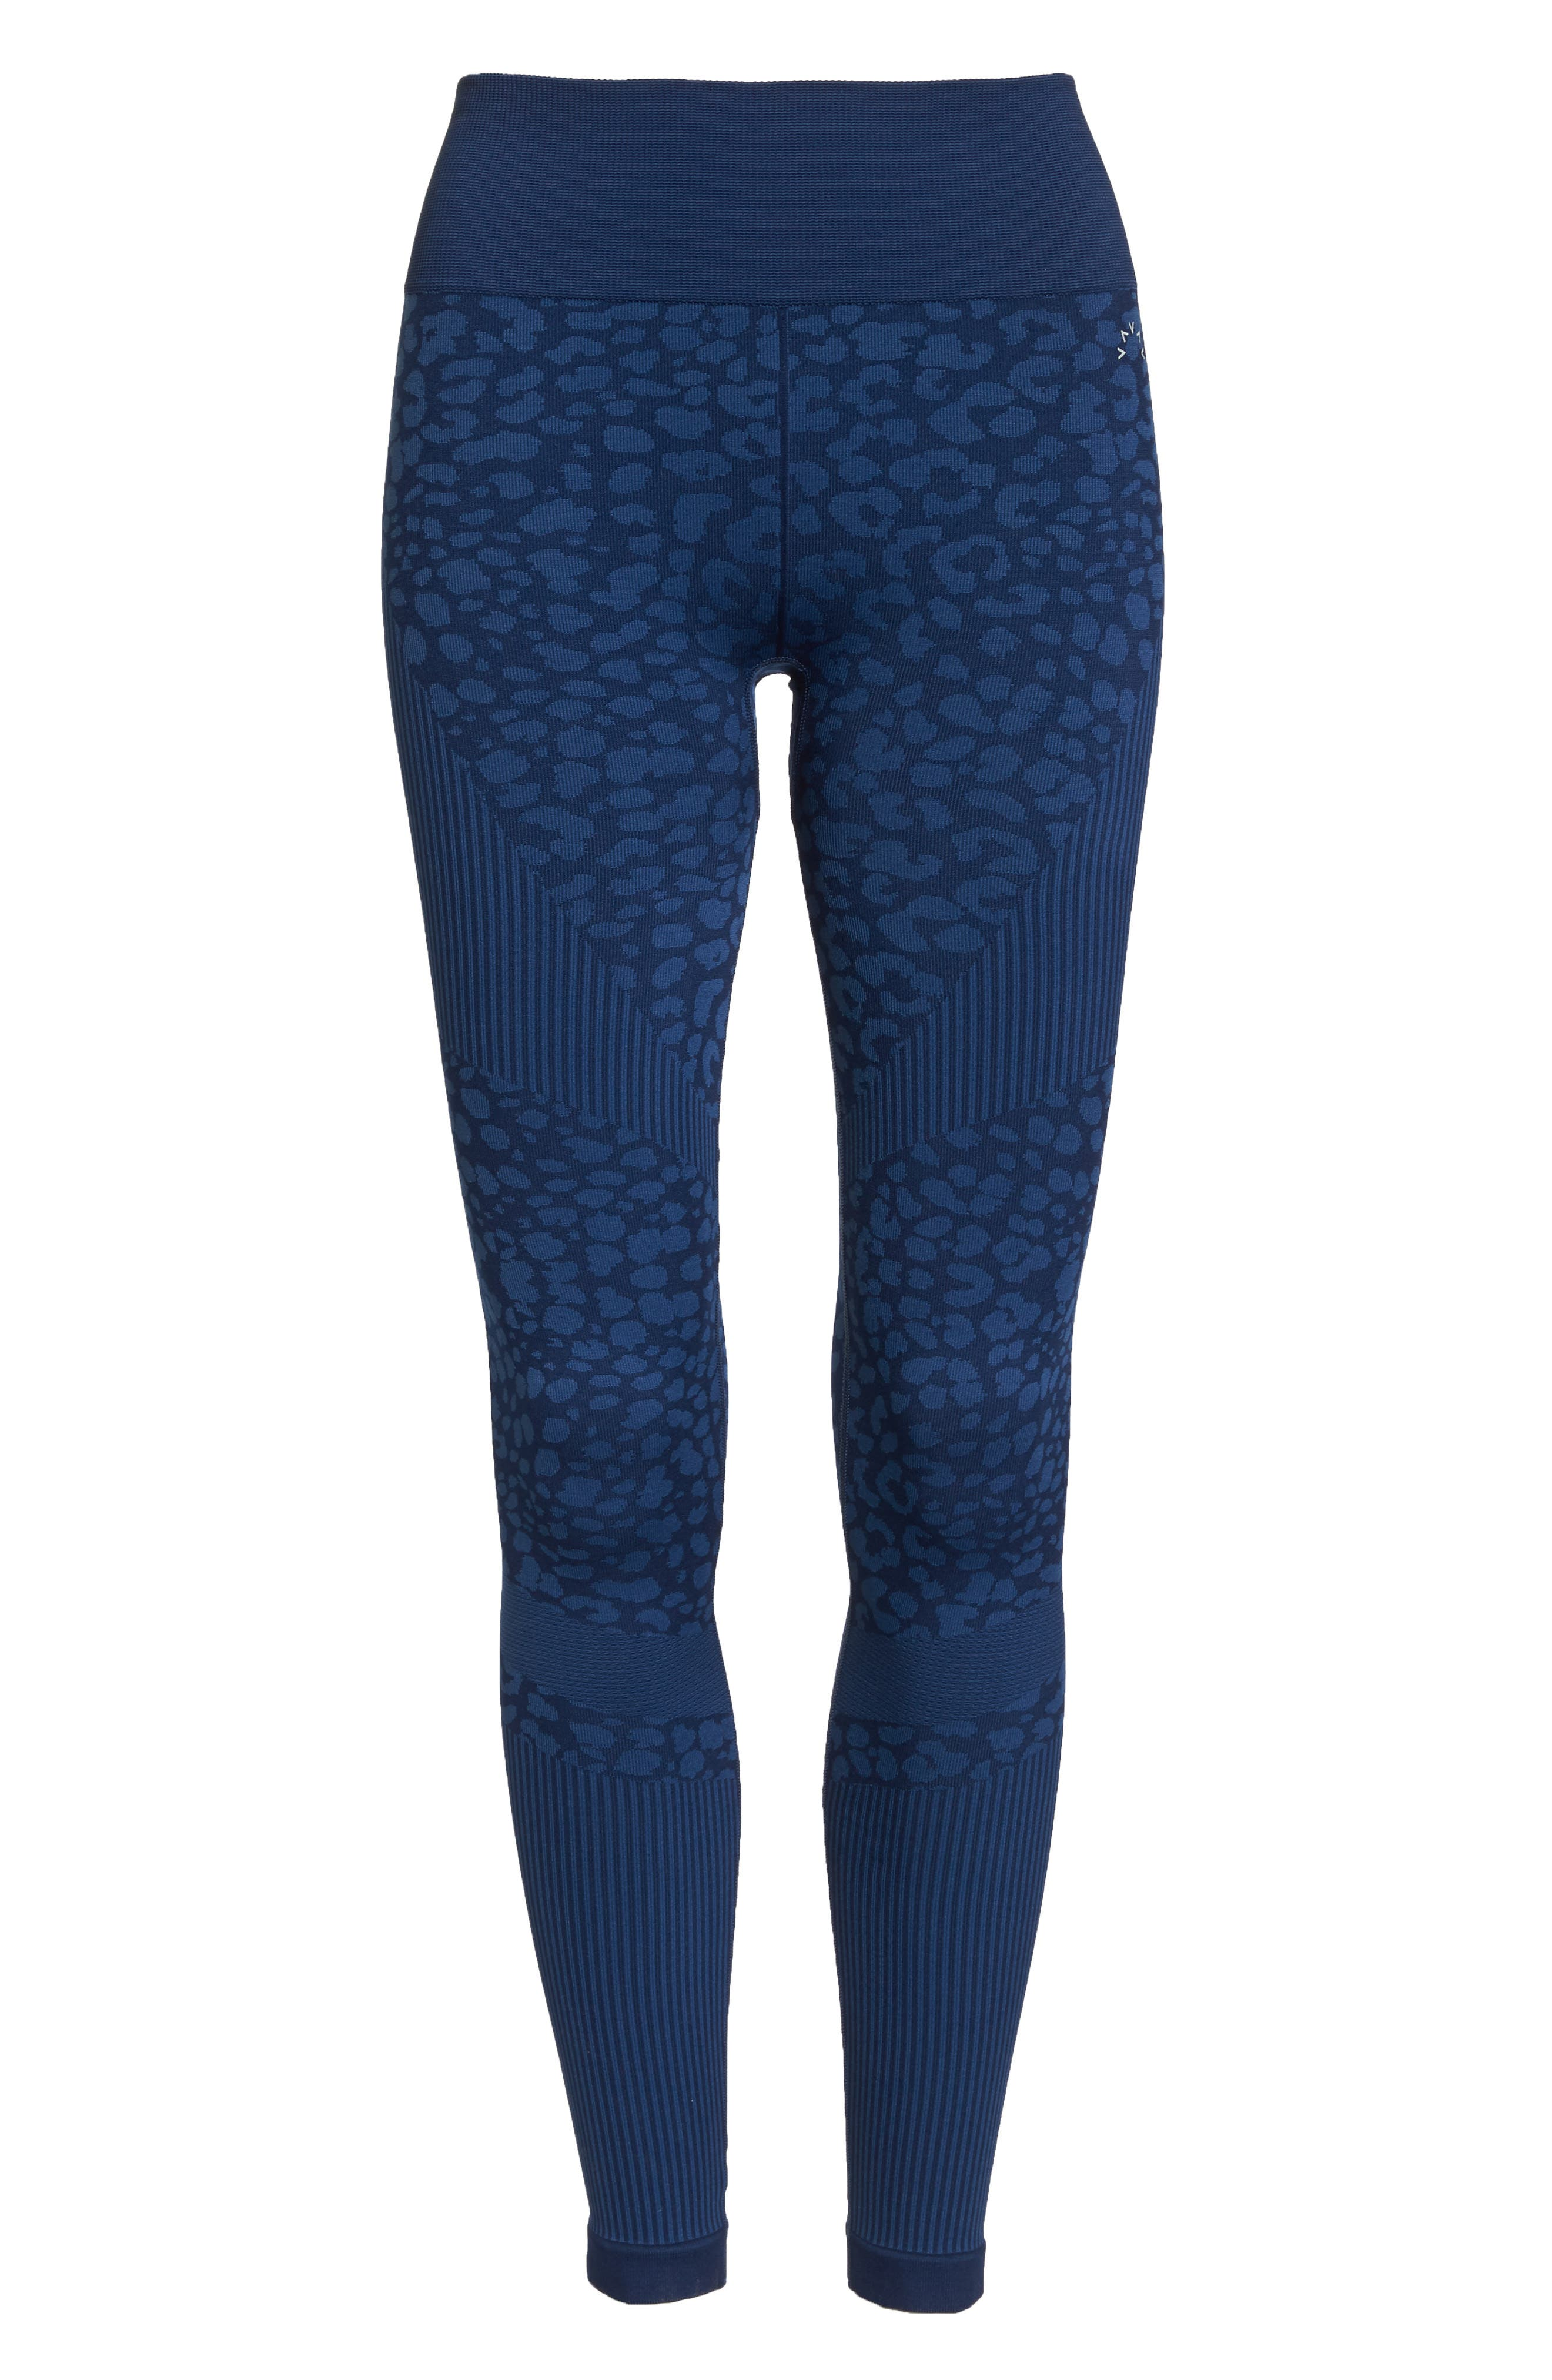 Quincy Seamless Leggings,                             Alternate thumbnail 7, color,                             NAVY LEOPARD